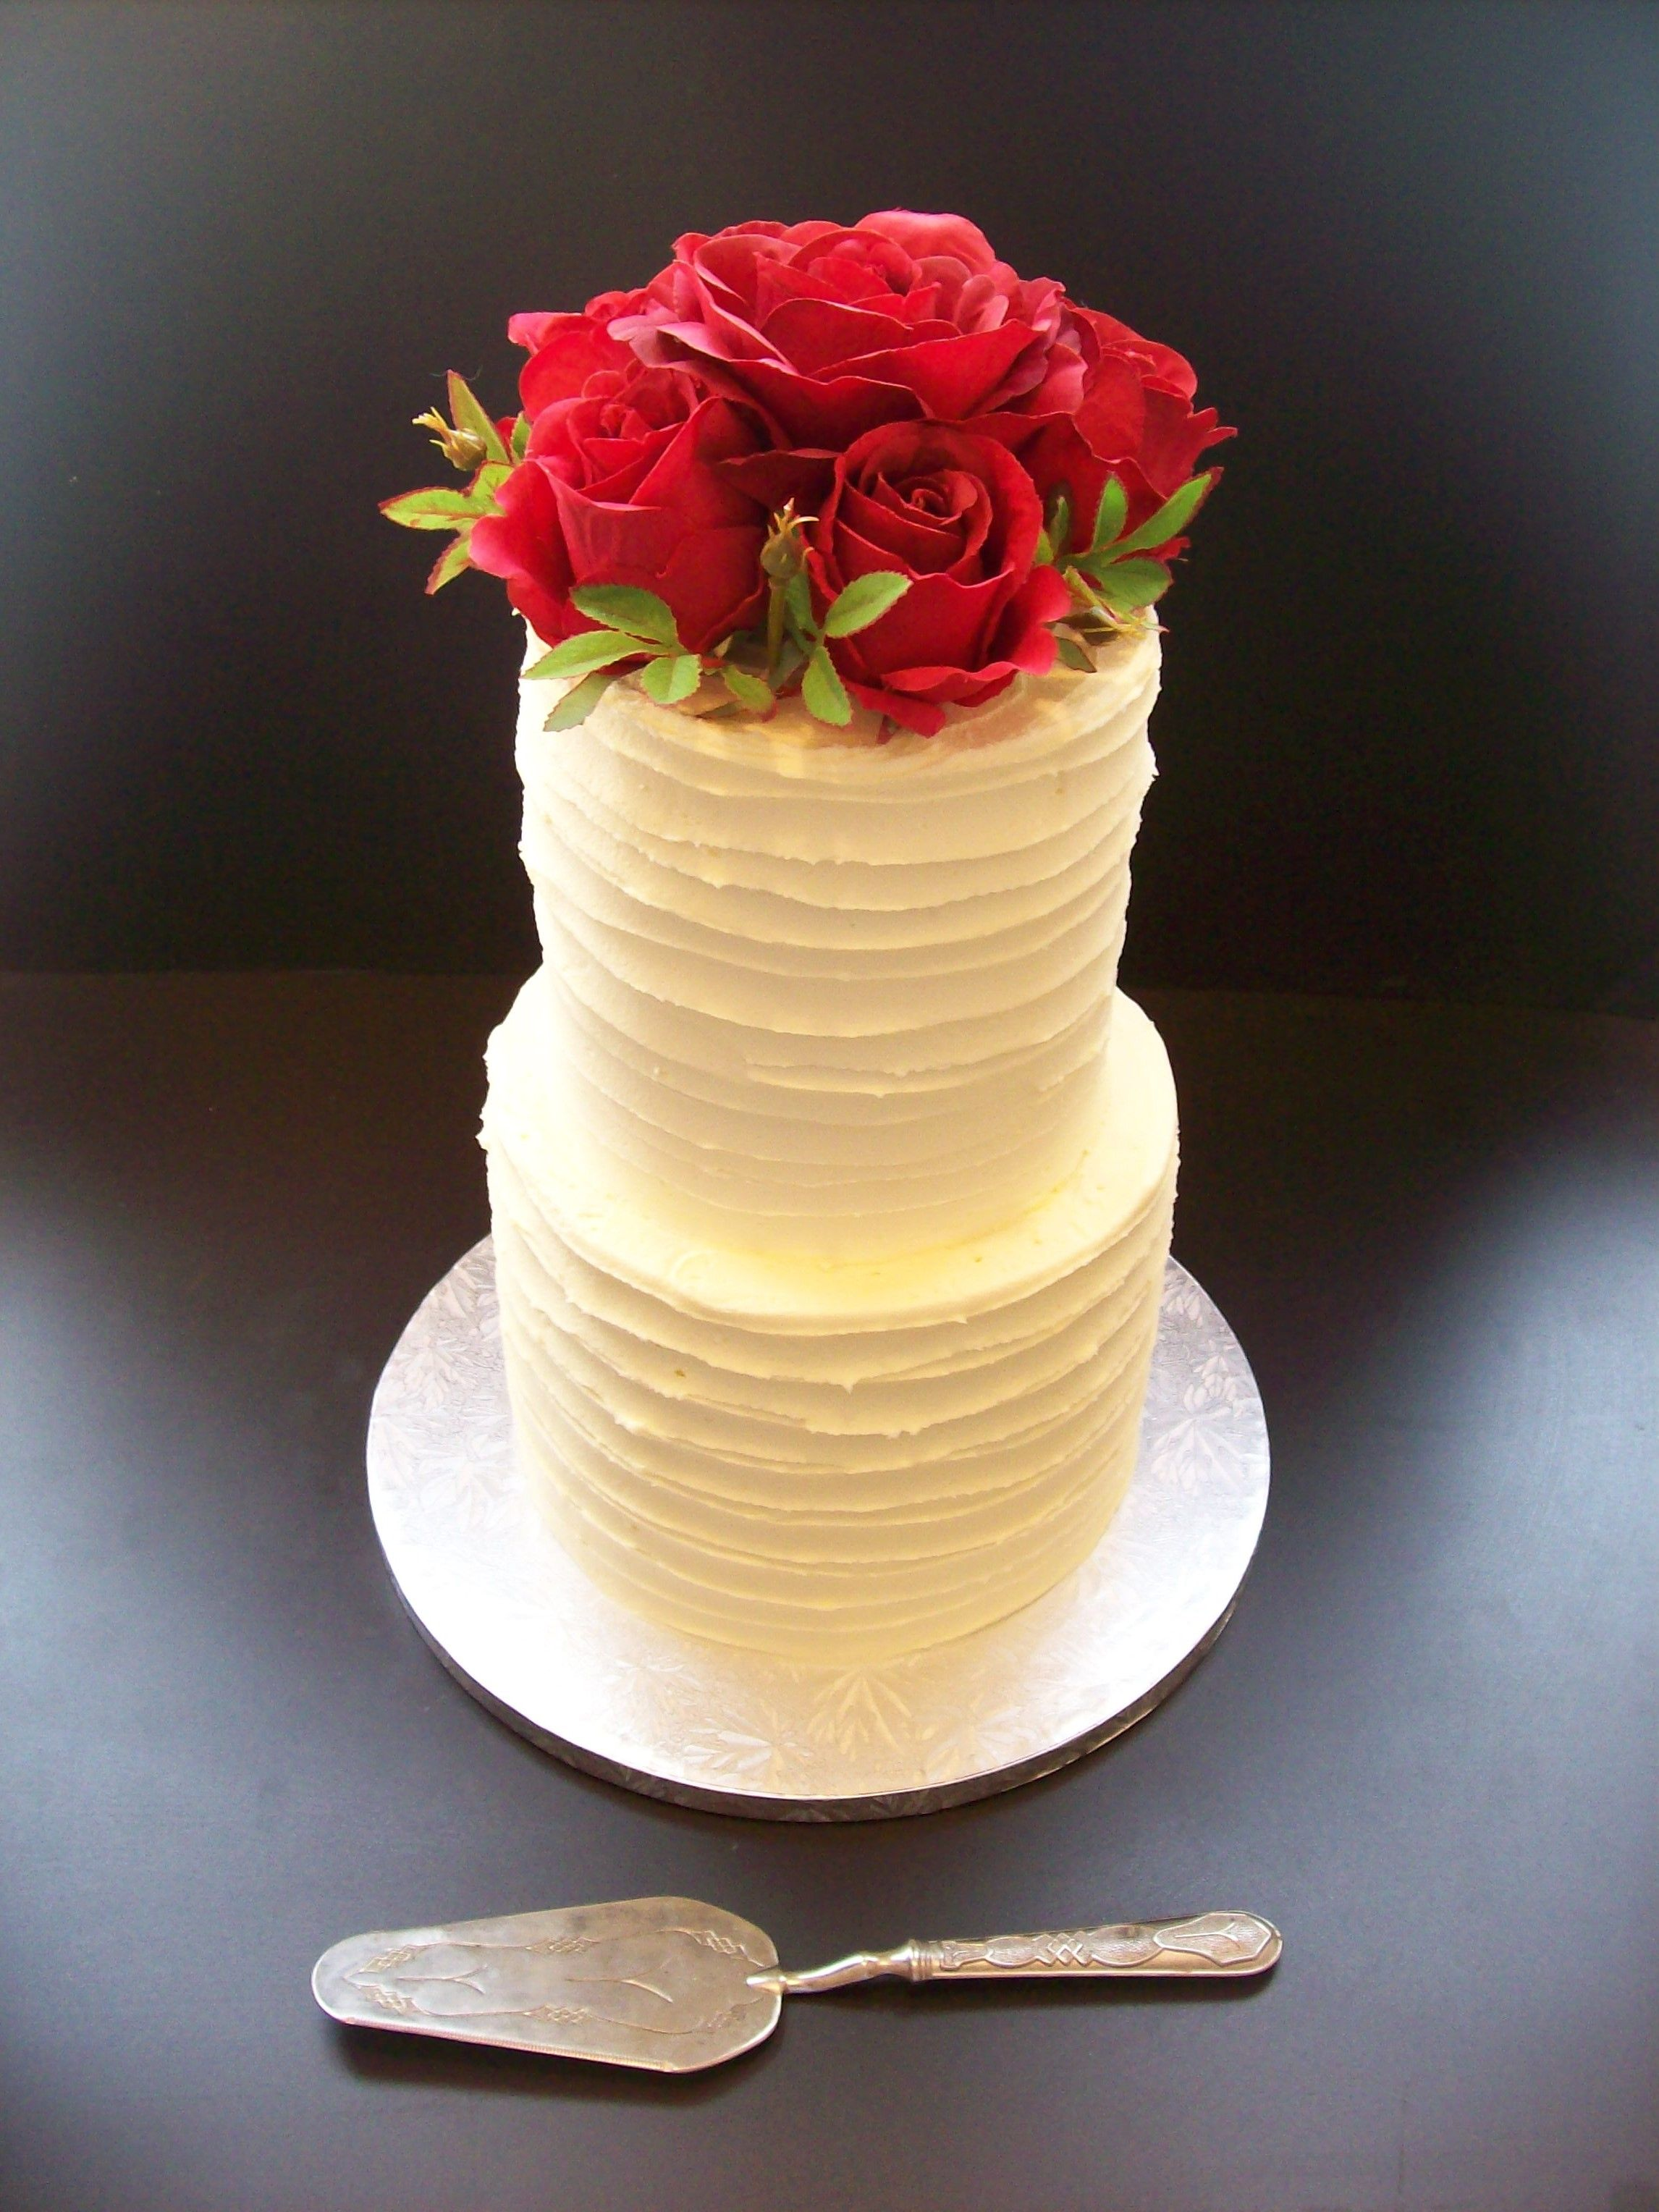 12 layer Cake $350 cake is 8 and 6 inch but each tier has 6 layers ...